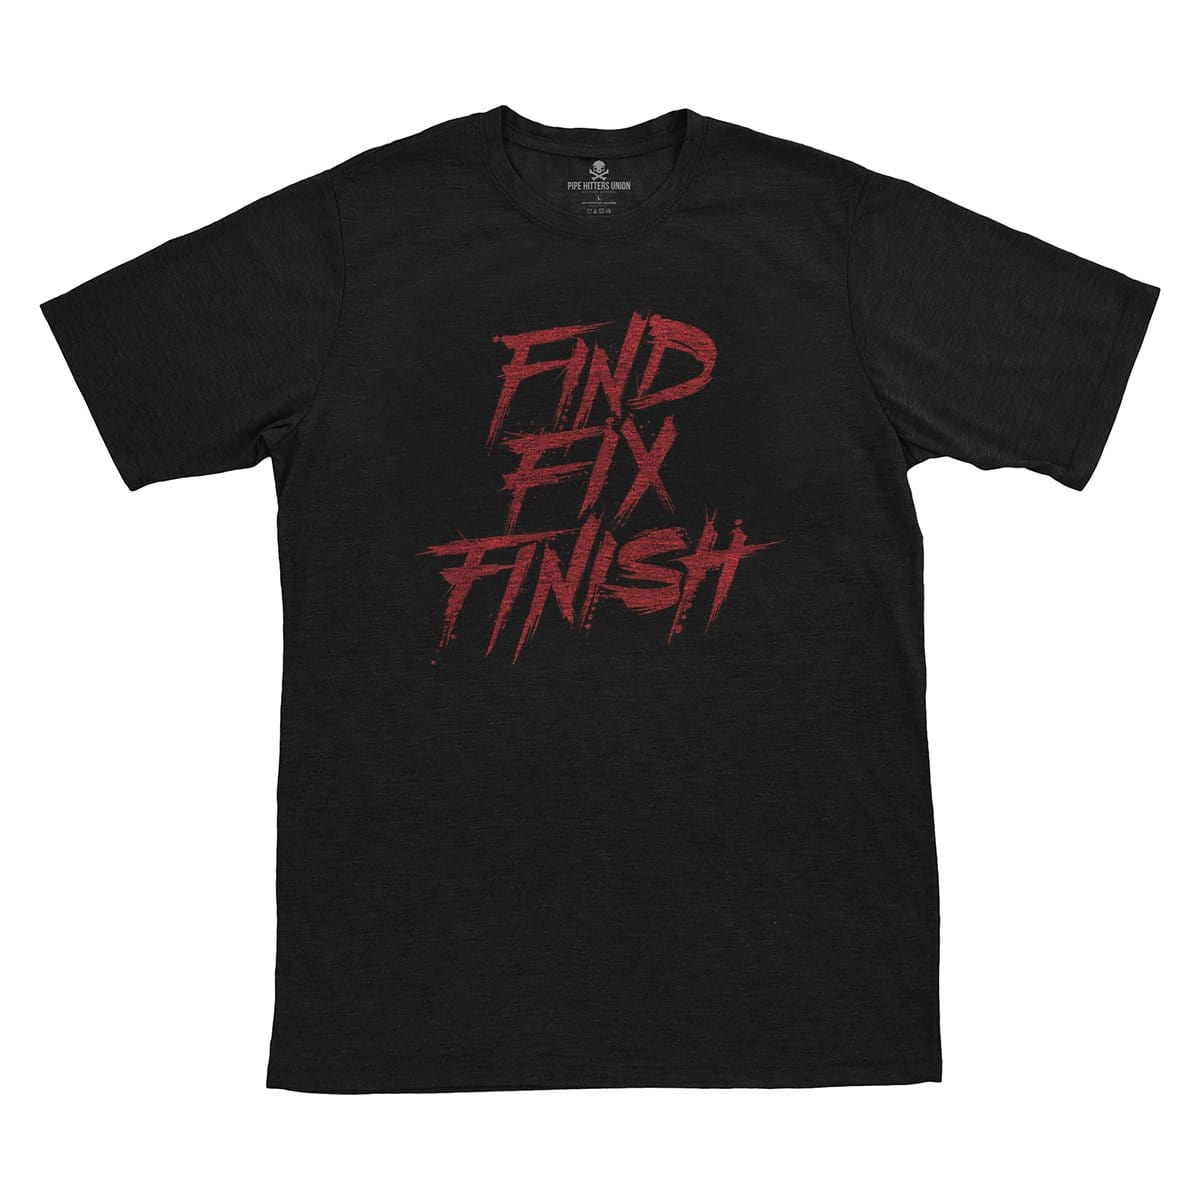 Find Fix Finish - Black/Red - T-Shirts - Pipe Hitters Union